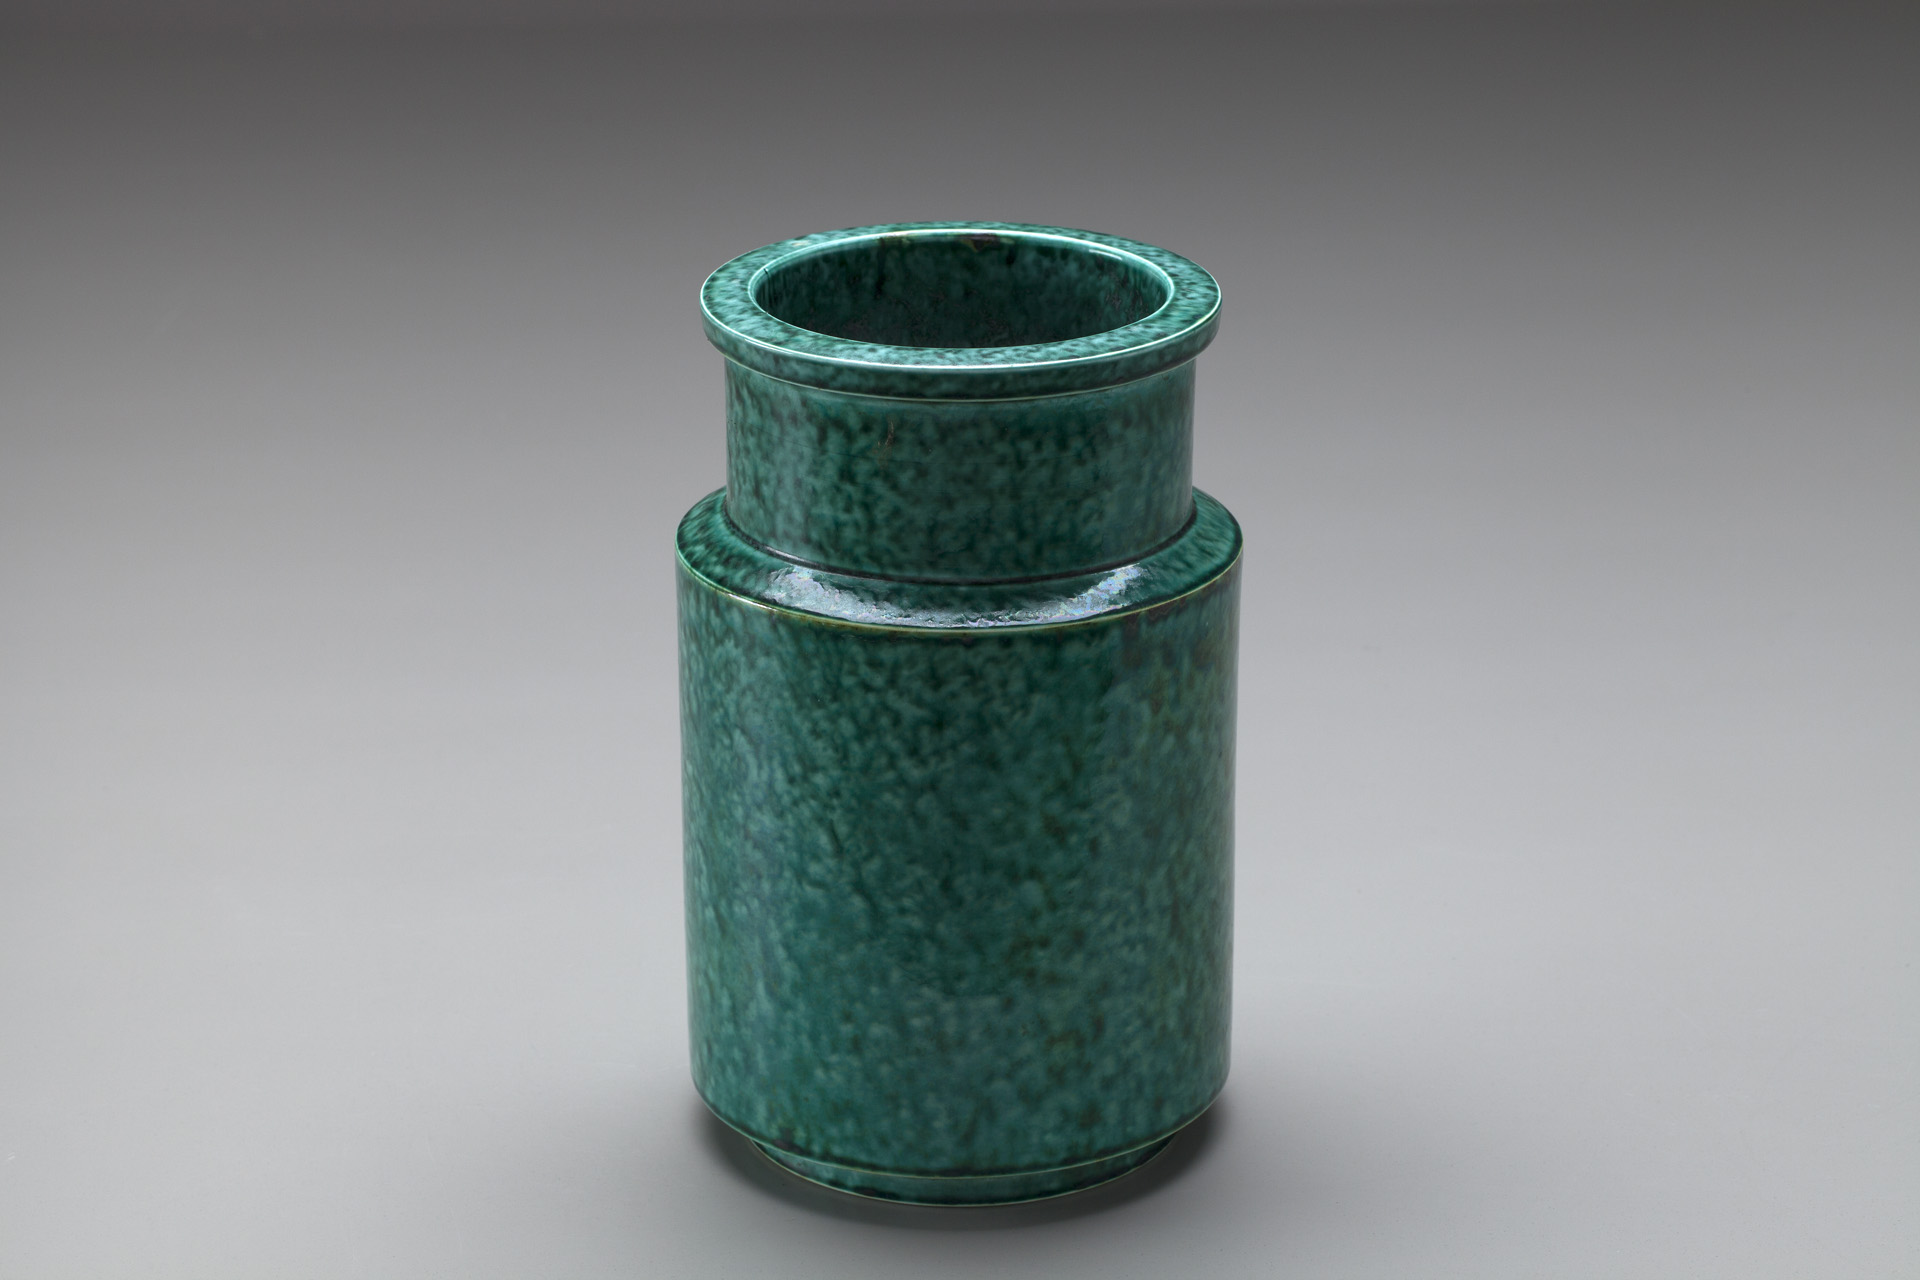 Willhelm Kåge Vase